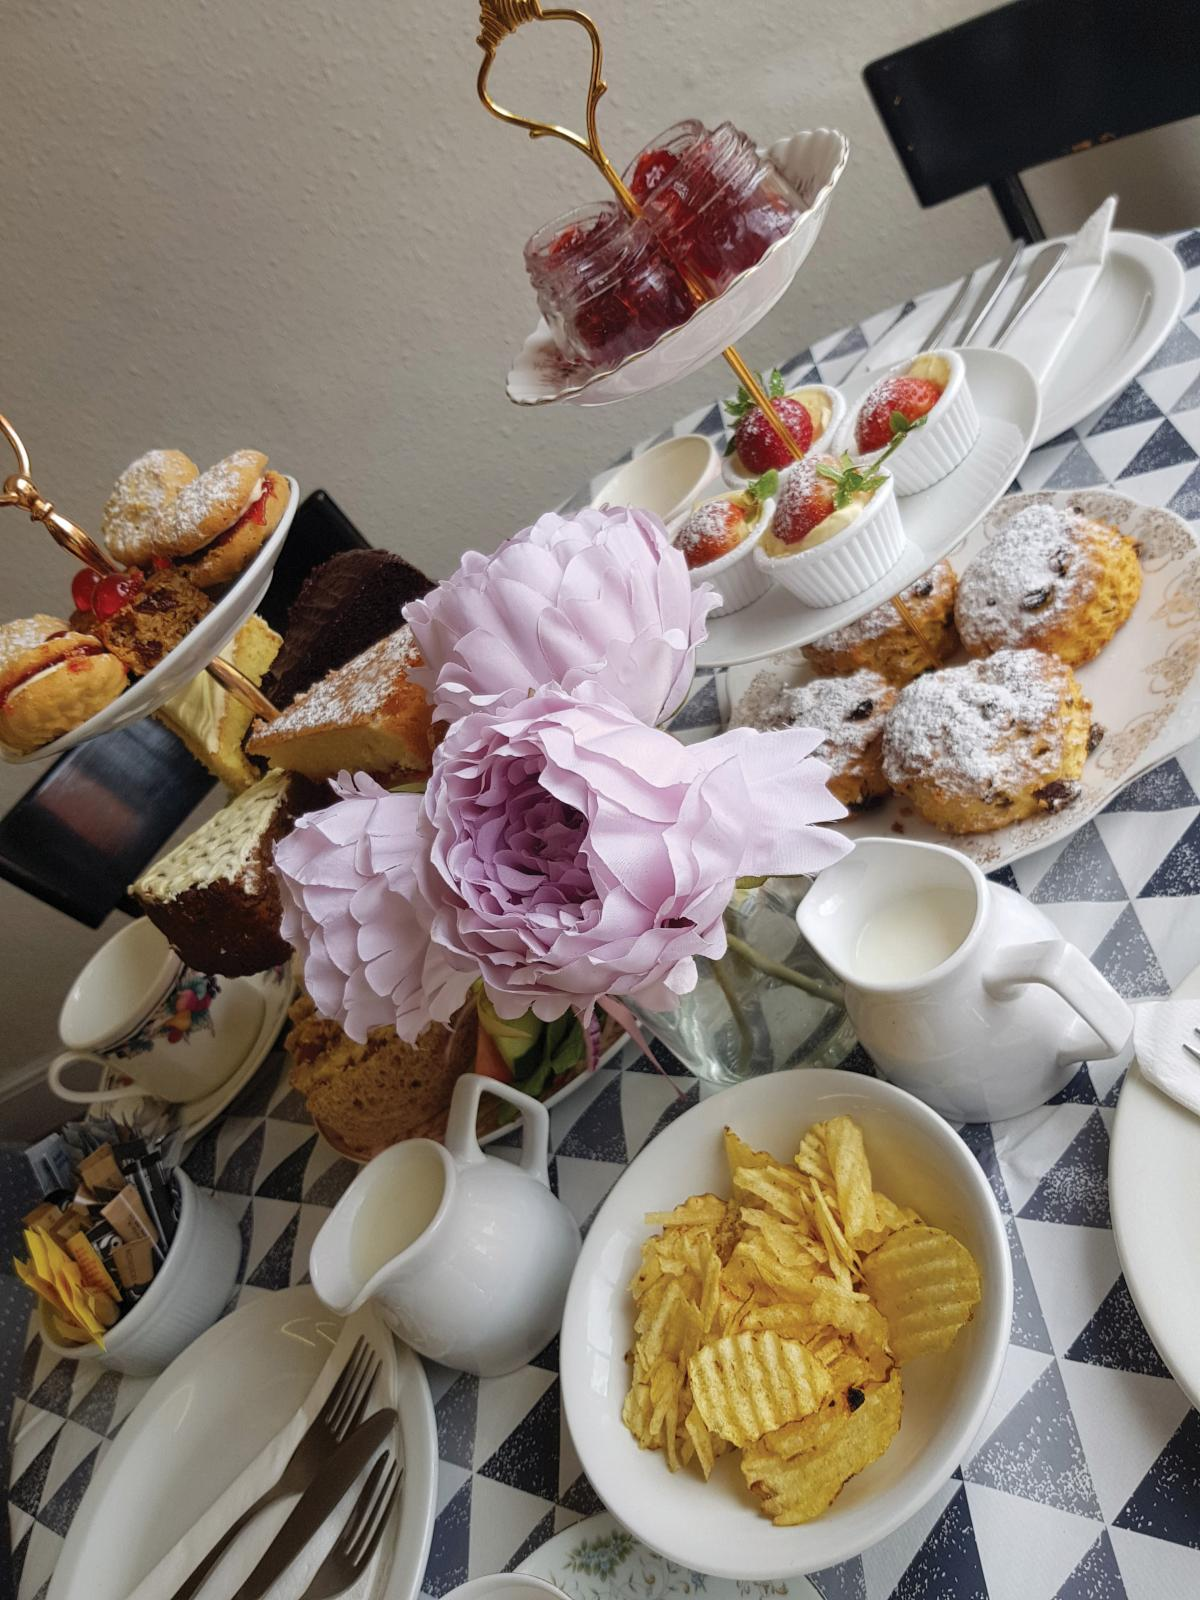 Images from Angel Cakes Tearoom